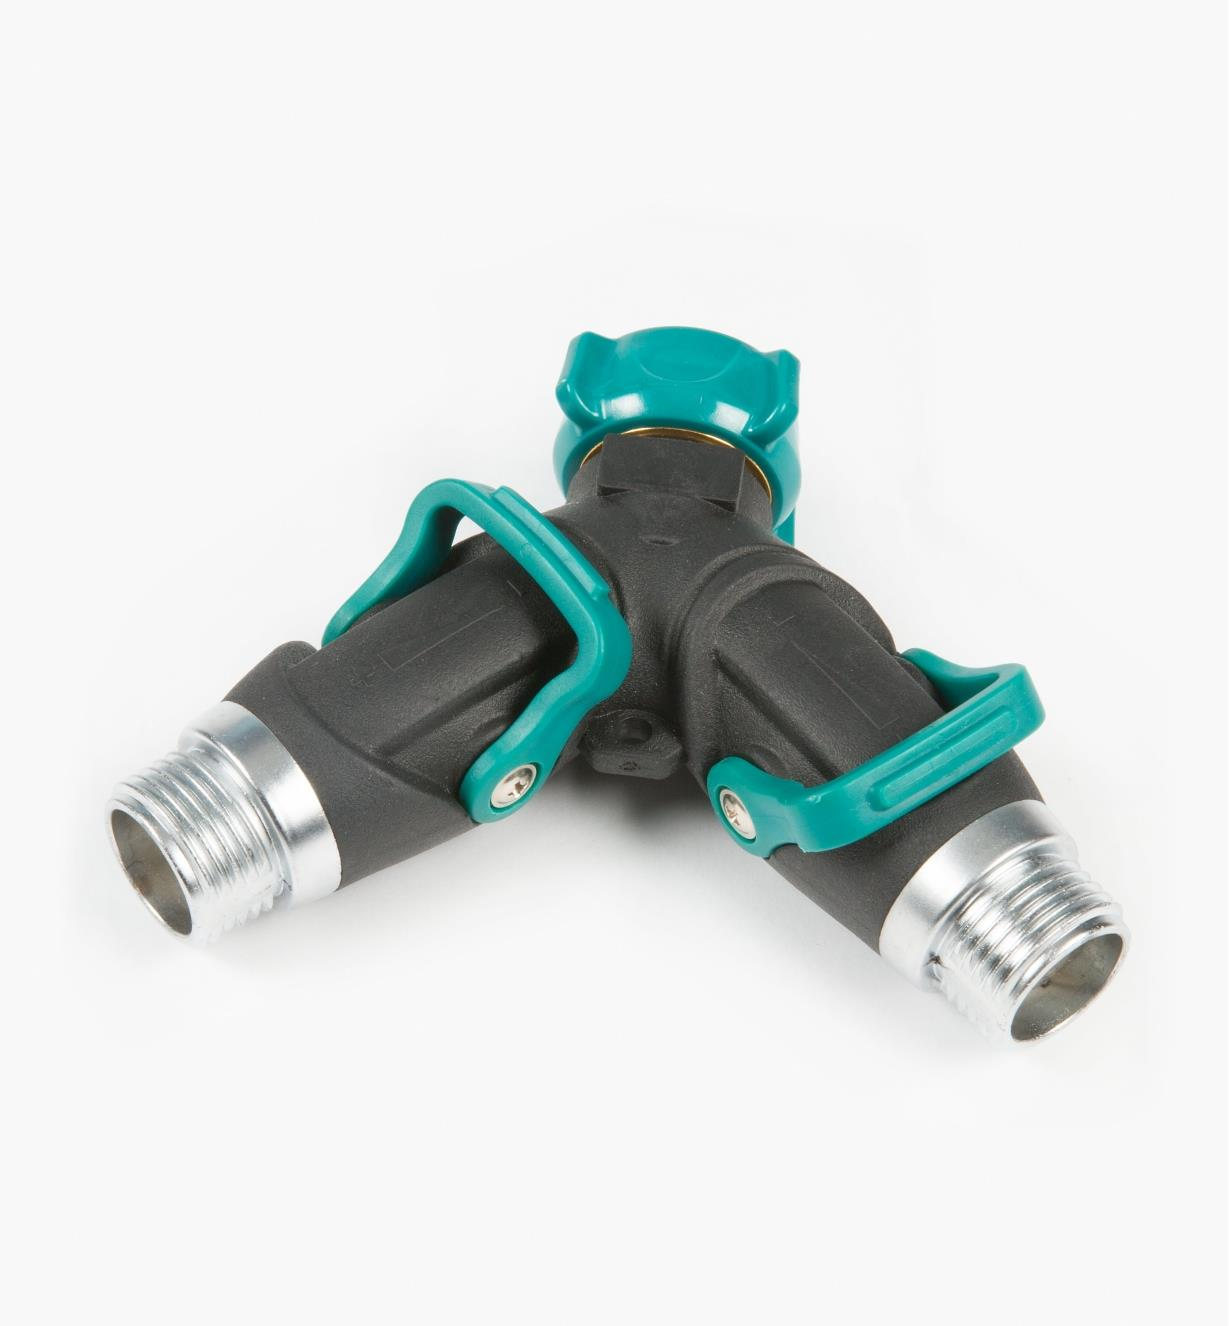 AL809 - Thumb-Operated Shut-Off Y-Valve